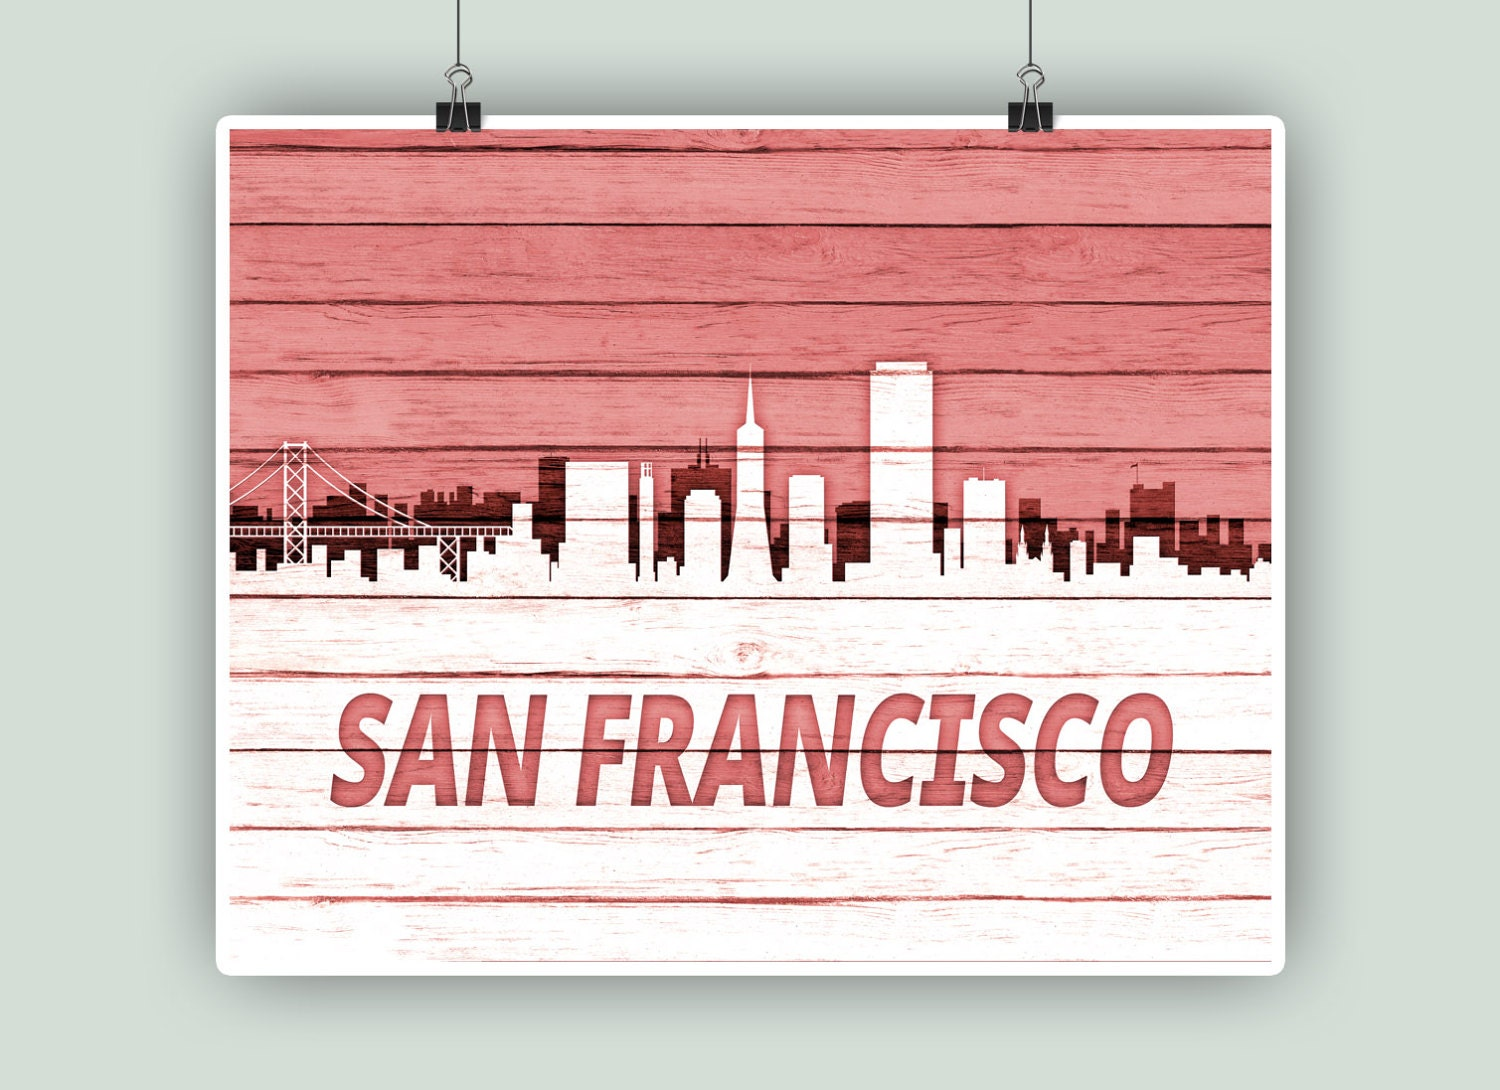 San Francisco Personalized Skyline San Francisco art